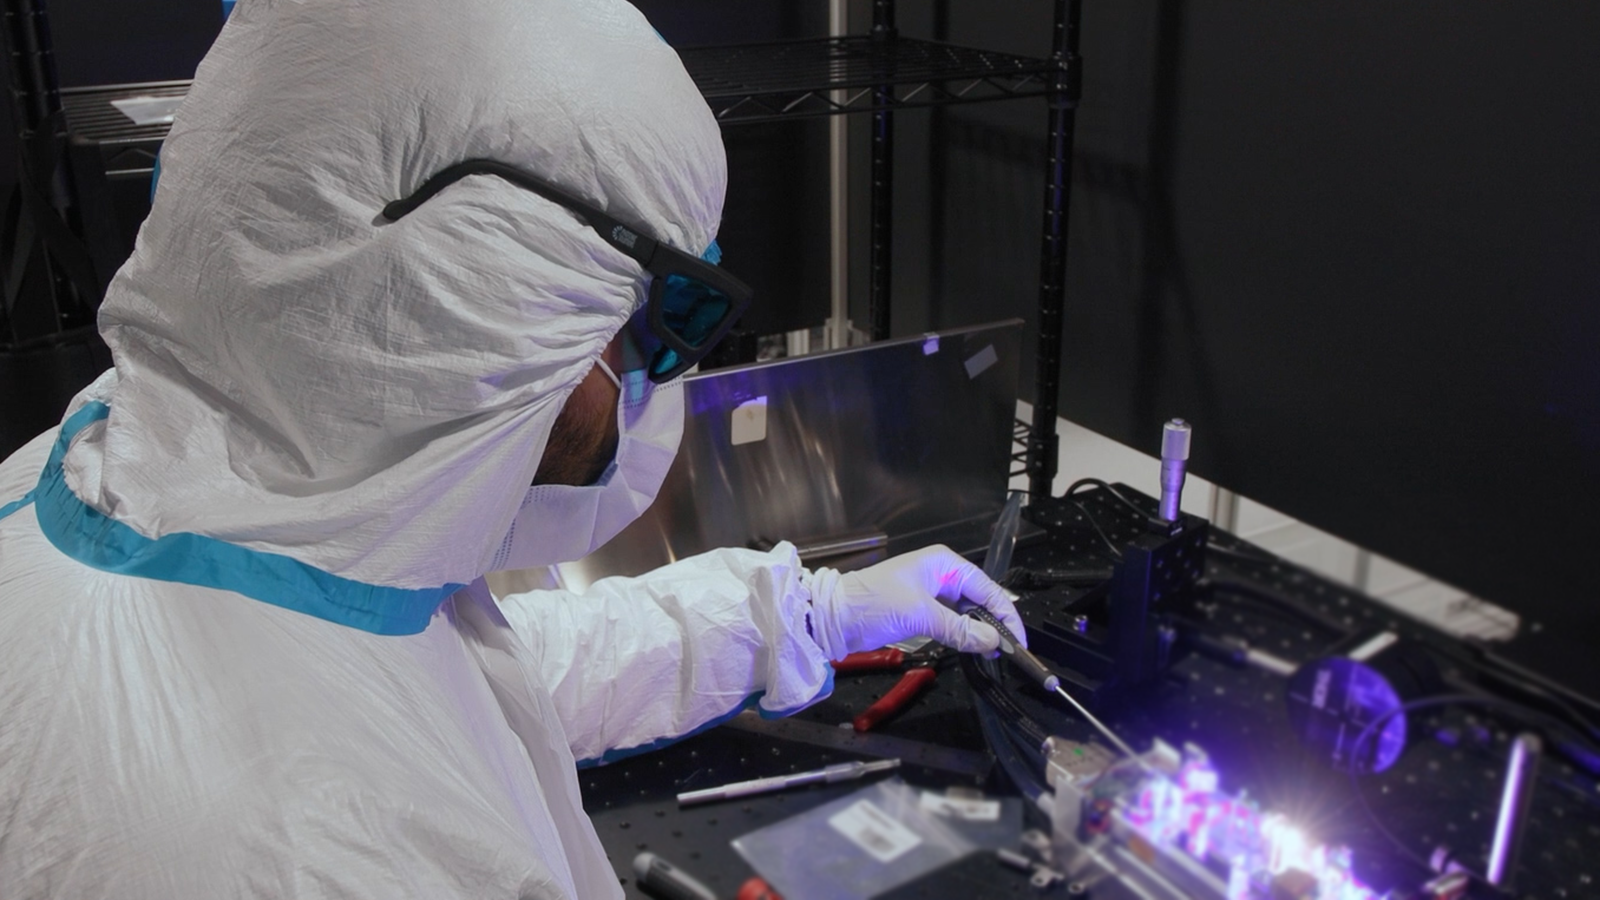 Uniklasers Launch World's First Laser to Operate With 349 nm Single Frequency